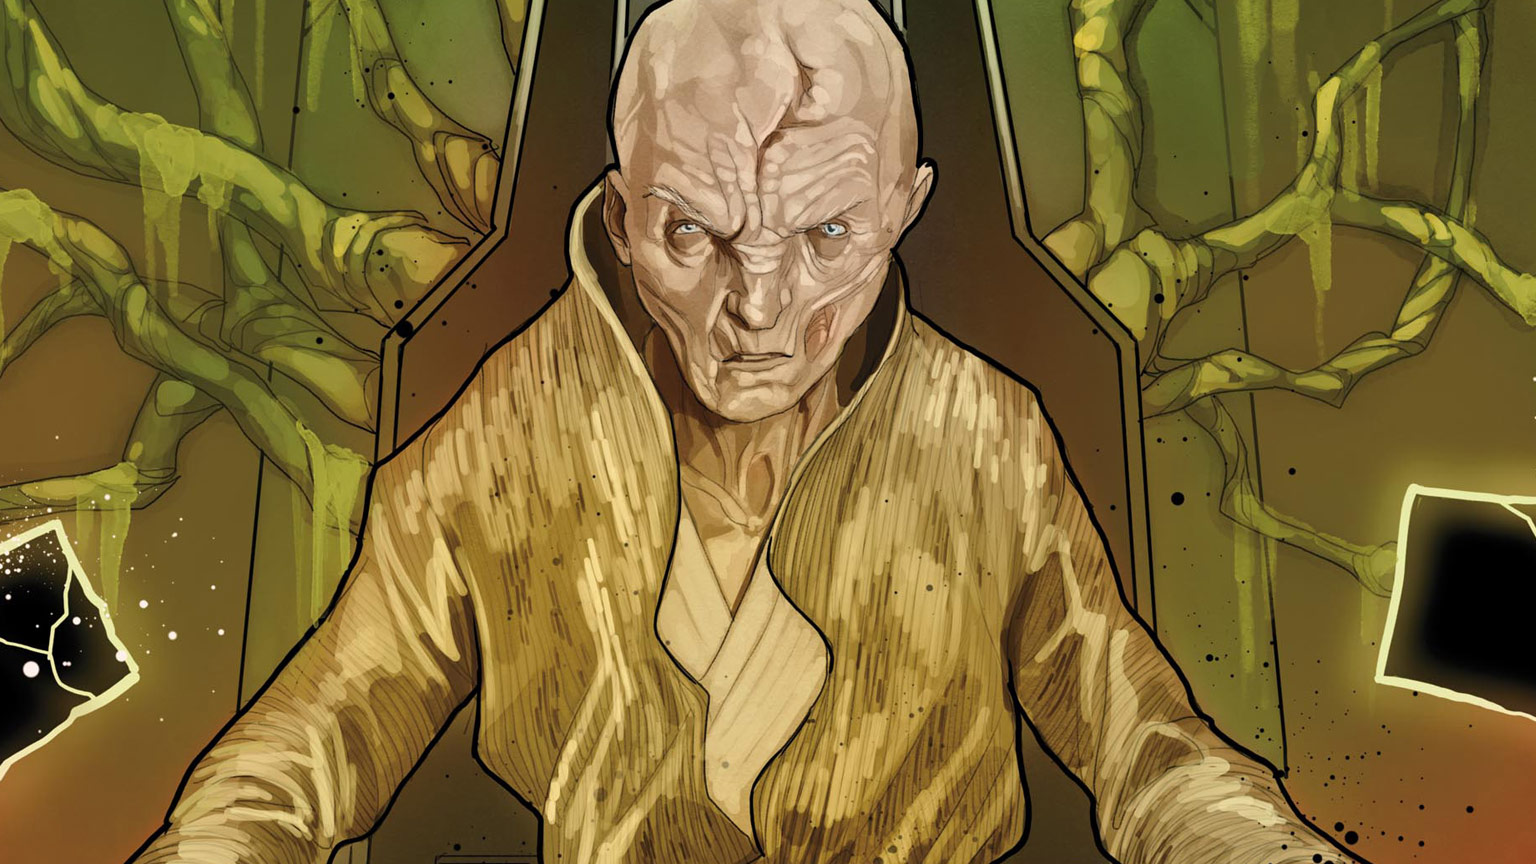 Age of Resistance - Supreme Leader Snoke #1 cover